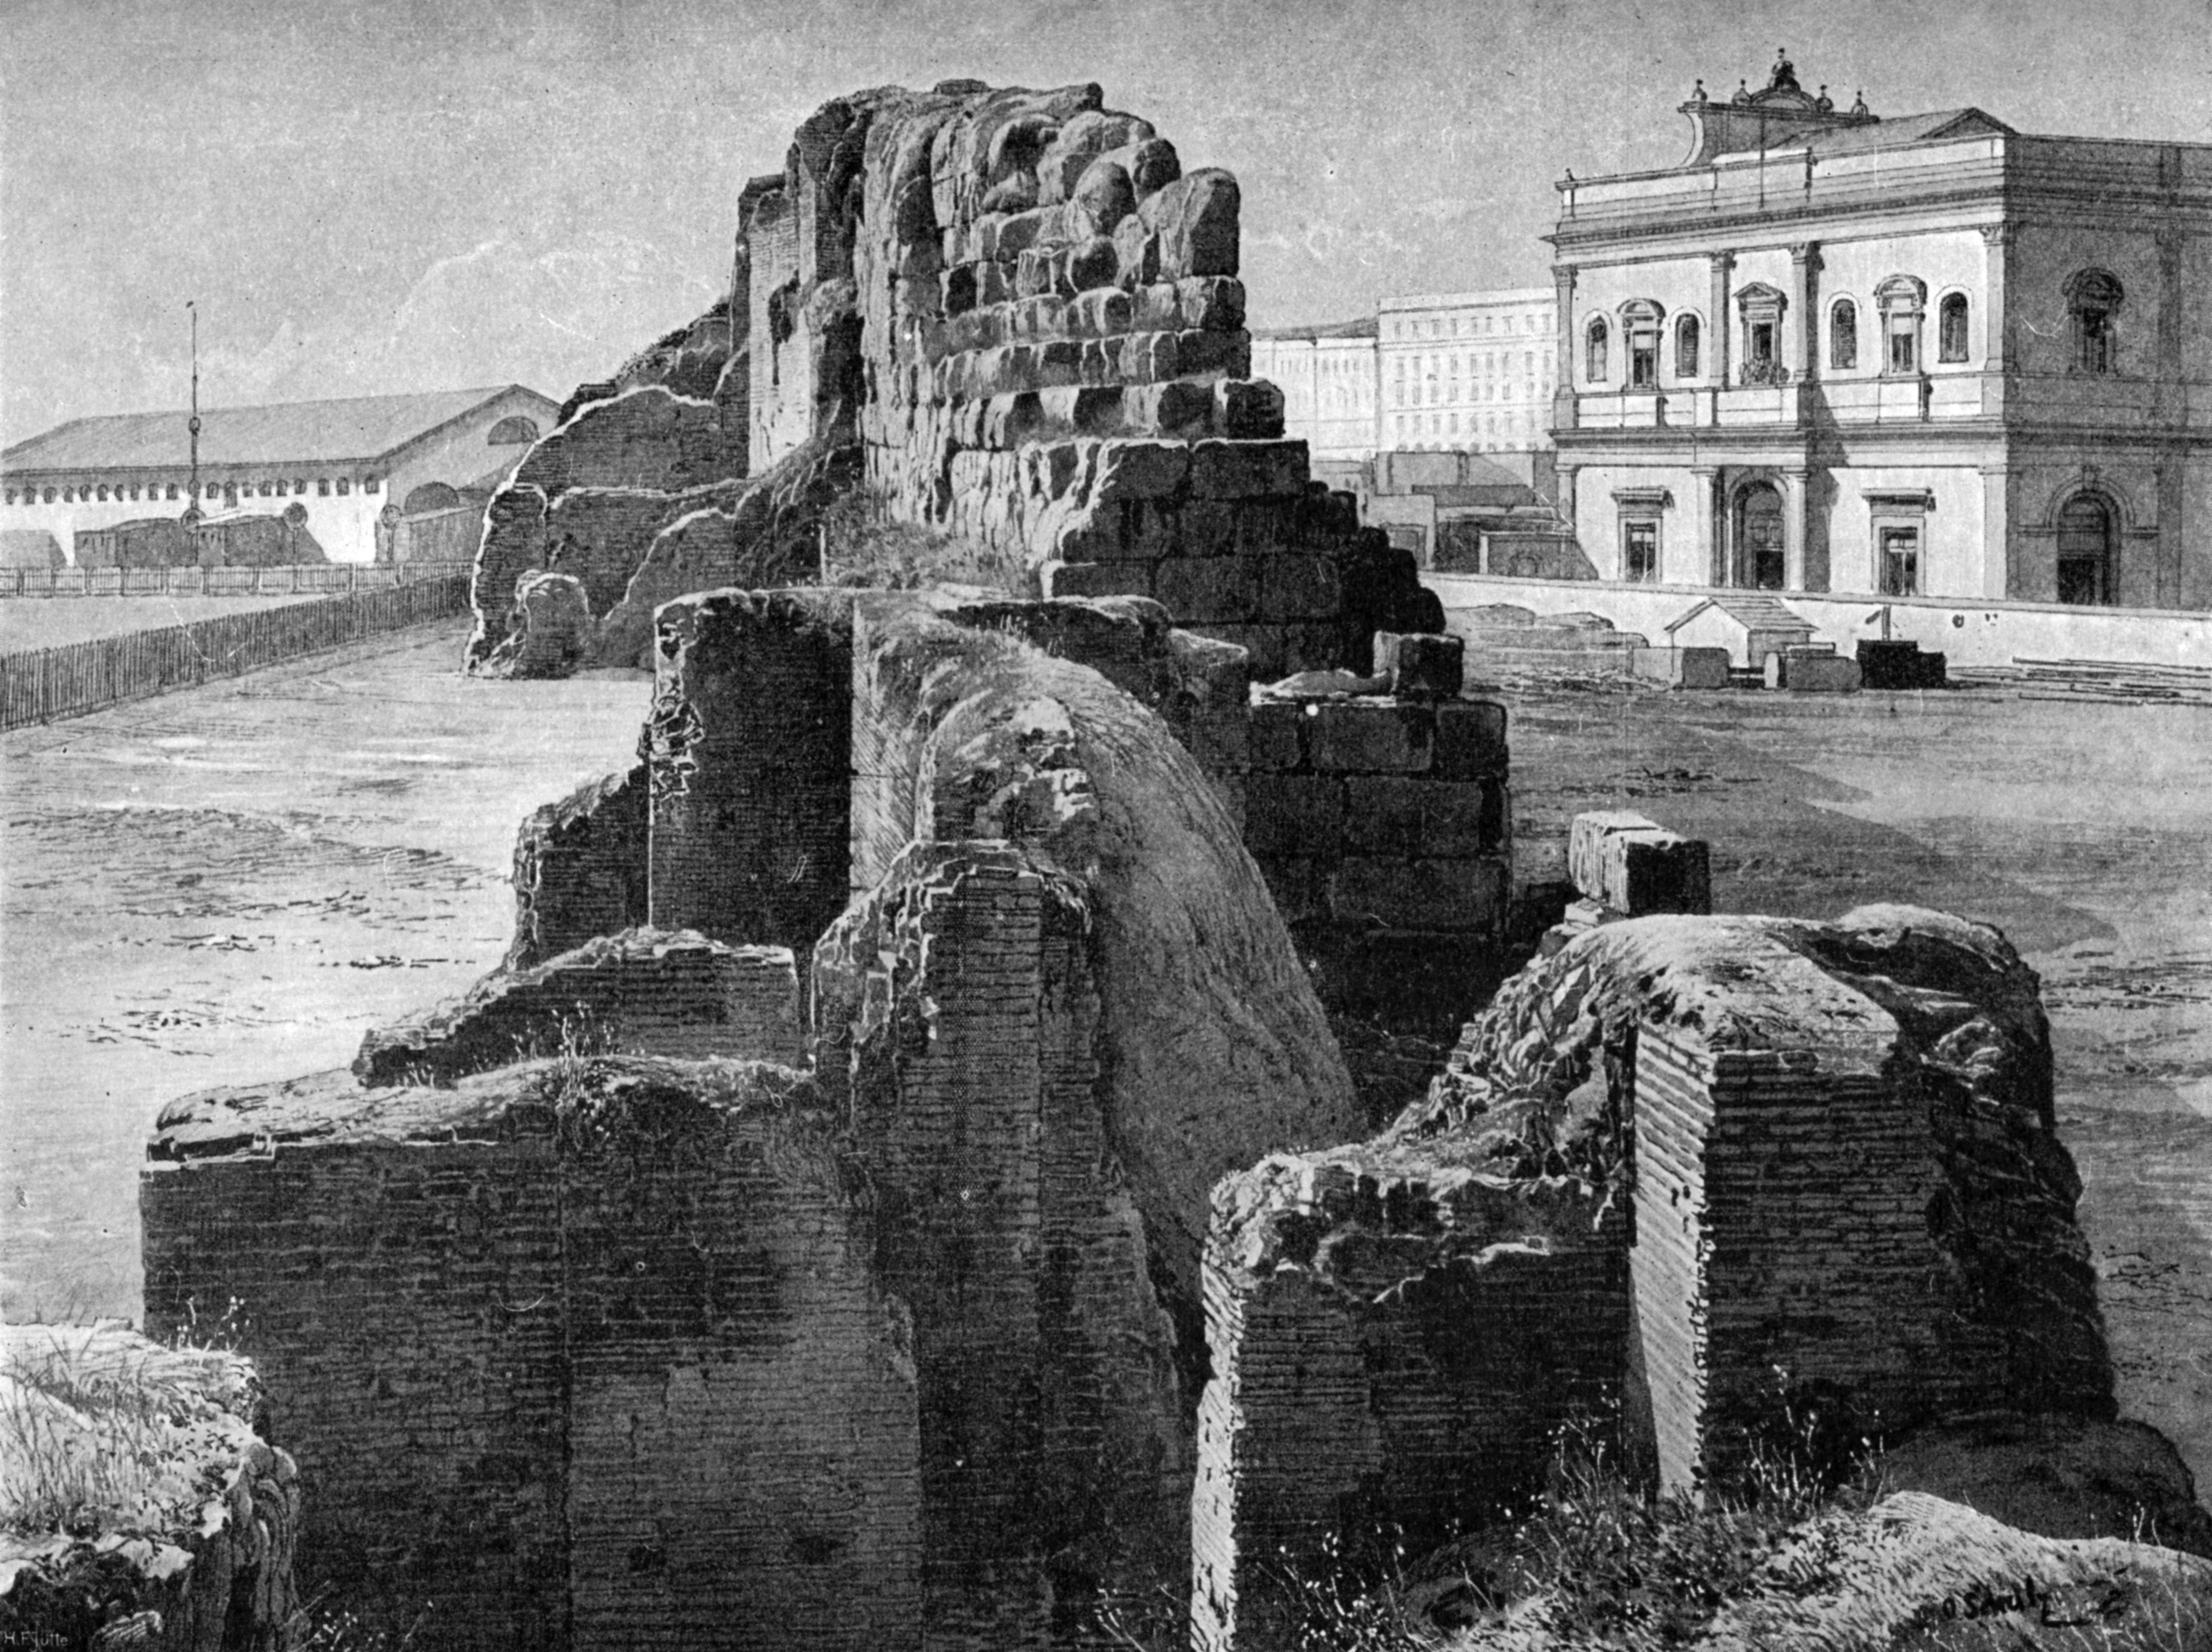 Remains of the Servian wall near the railway station, Rome, 1902.